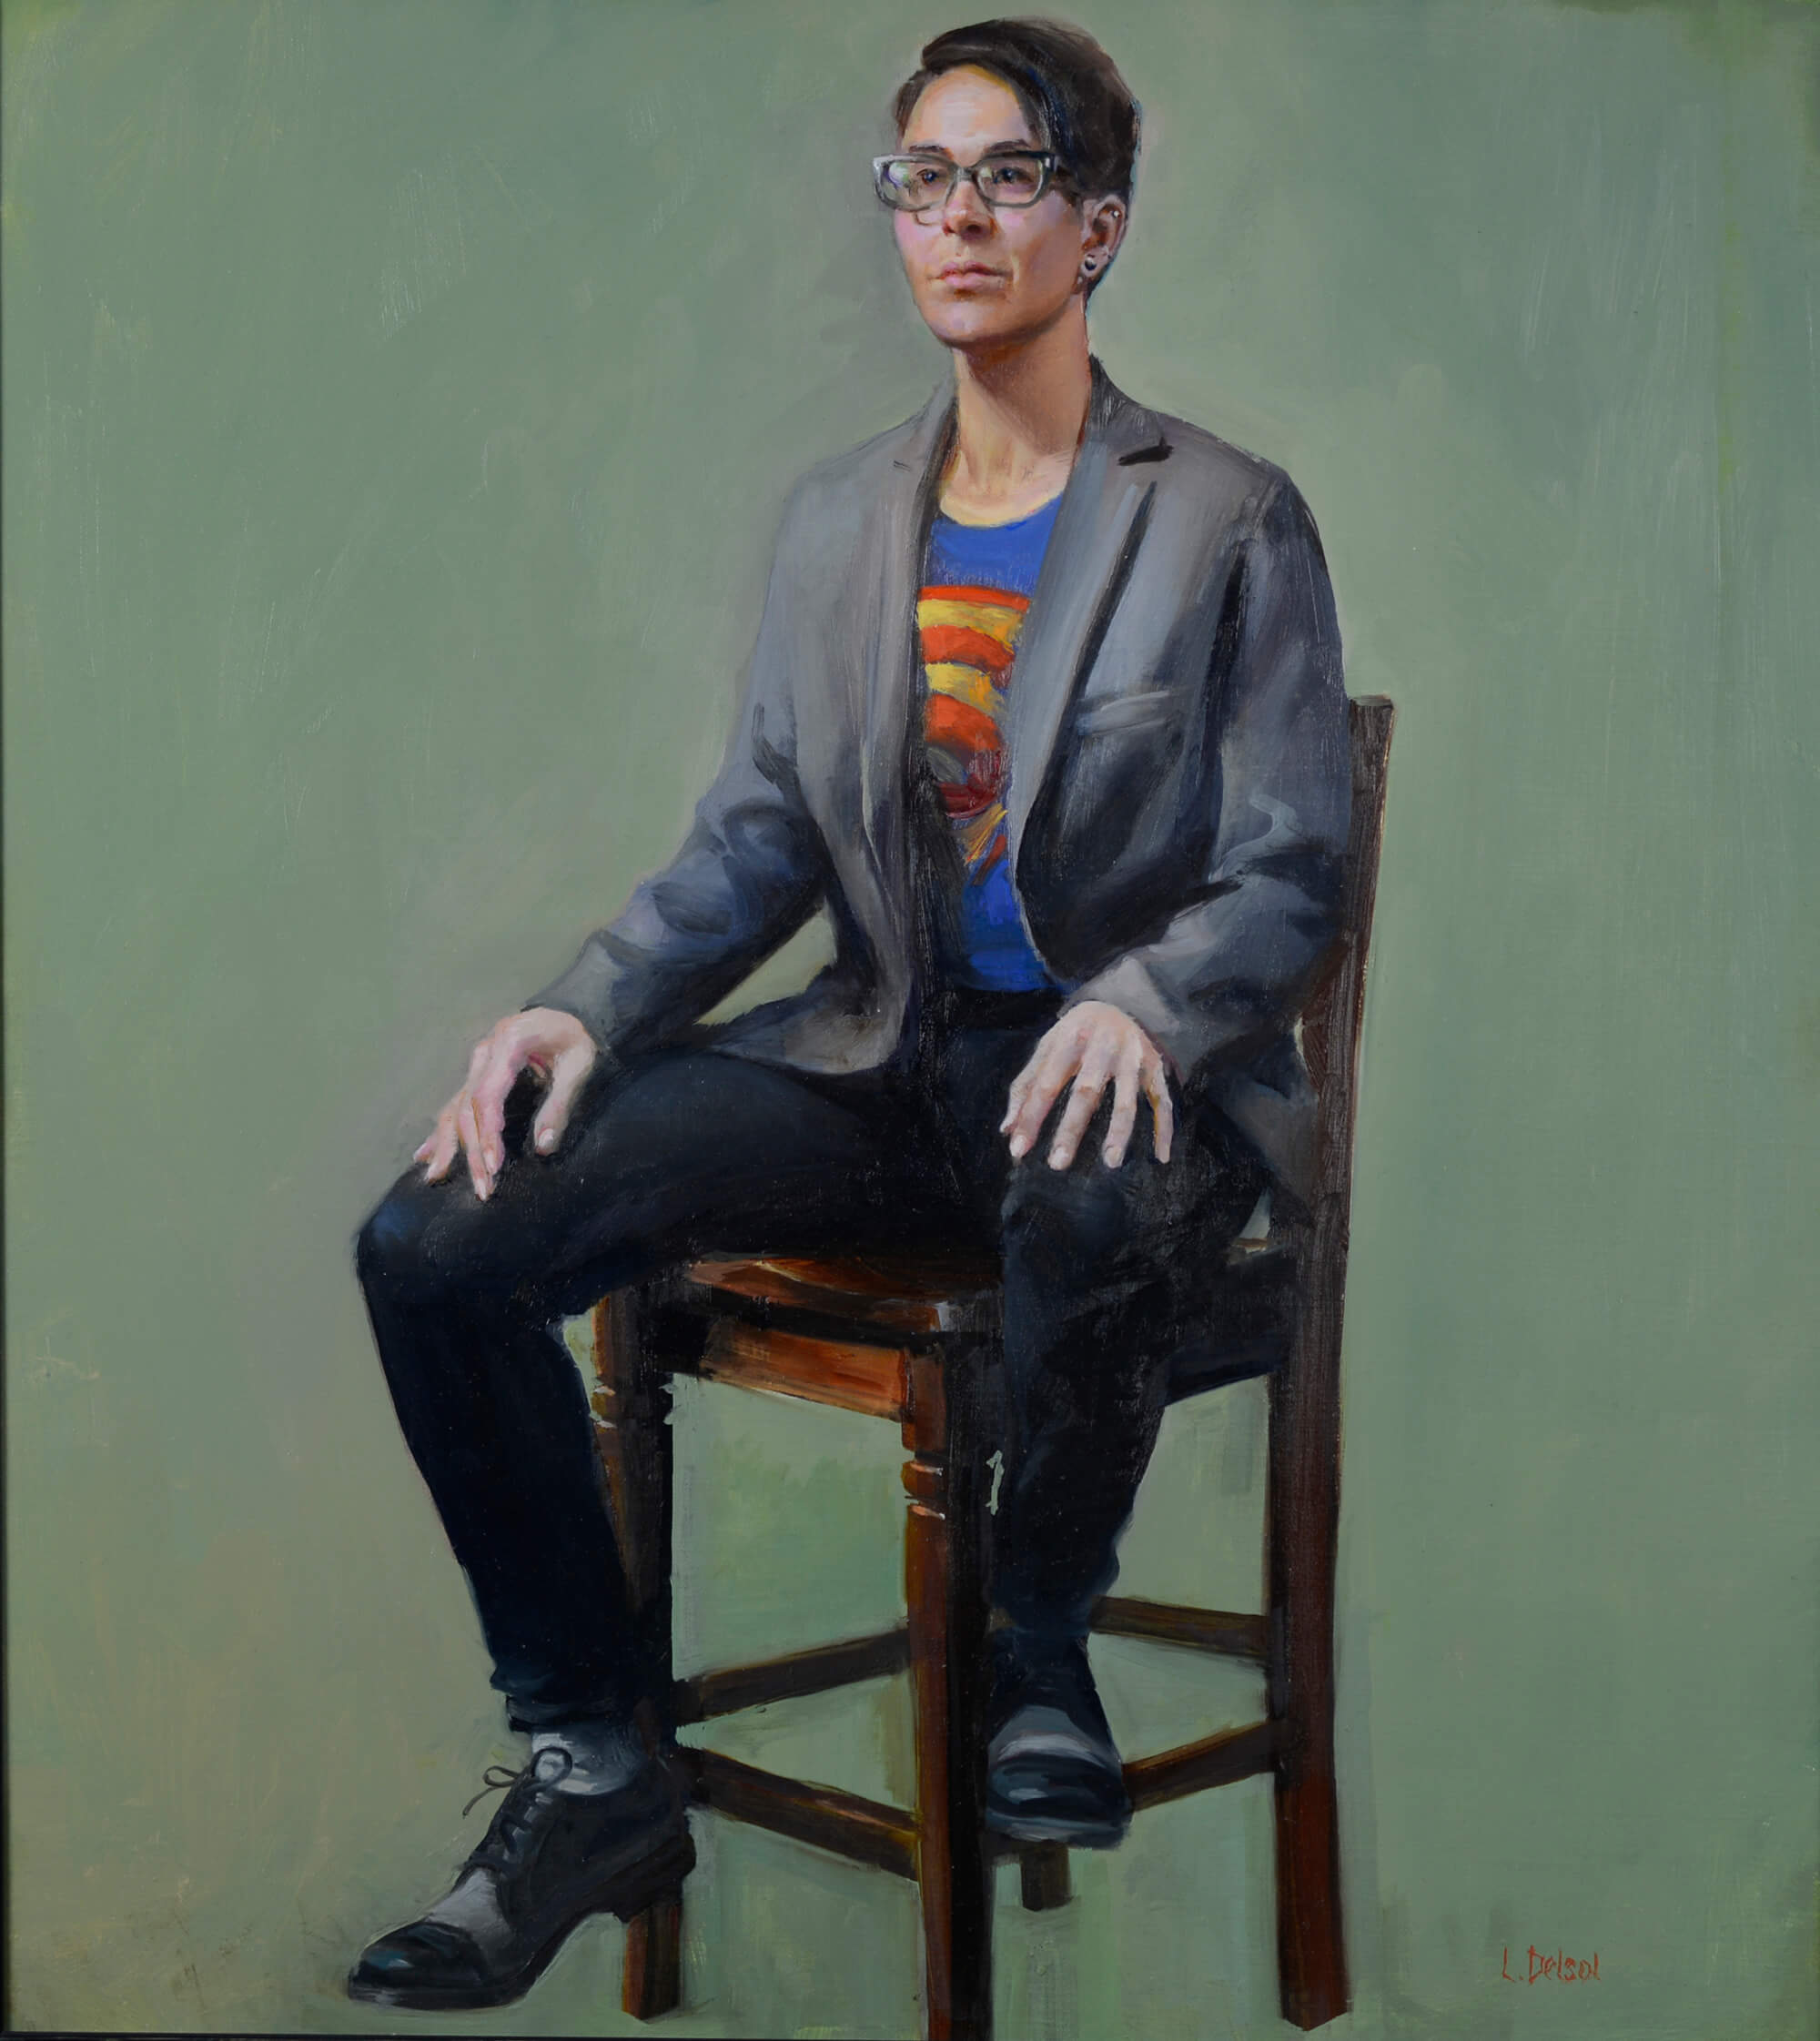 Figurative oil portrait of a woman wearing gray suit coat and superhero t-shirt sitting on a wooden chair